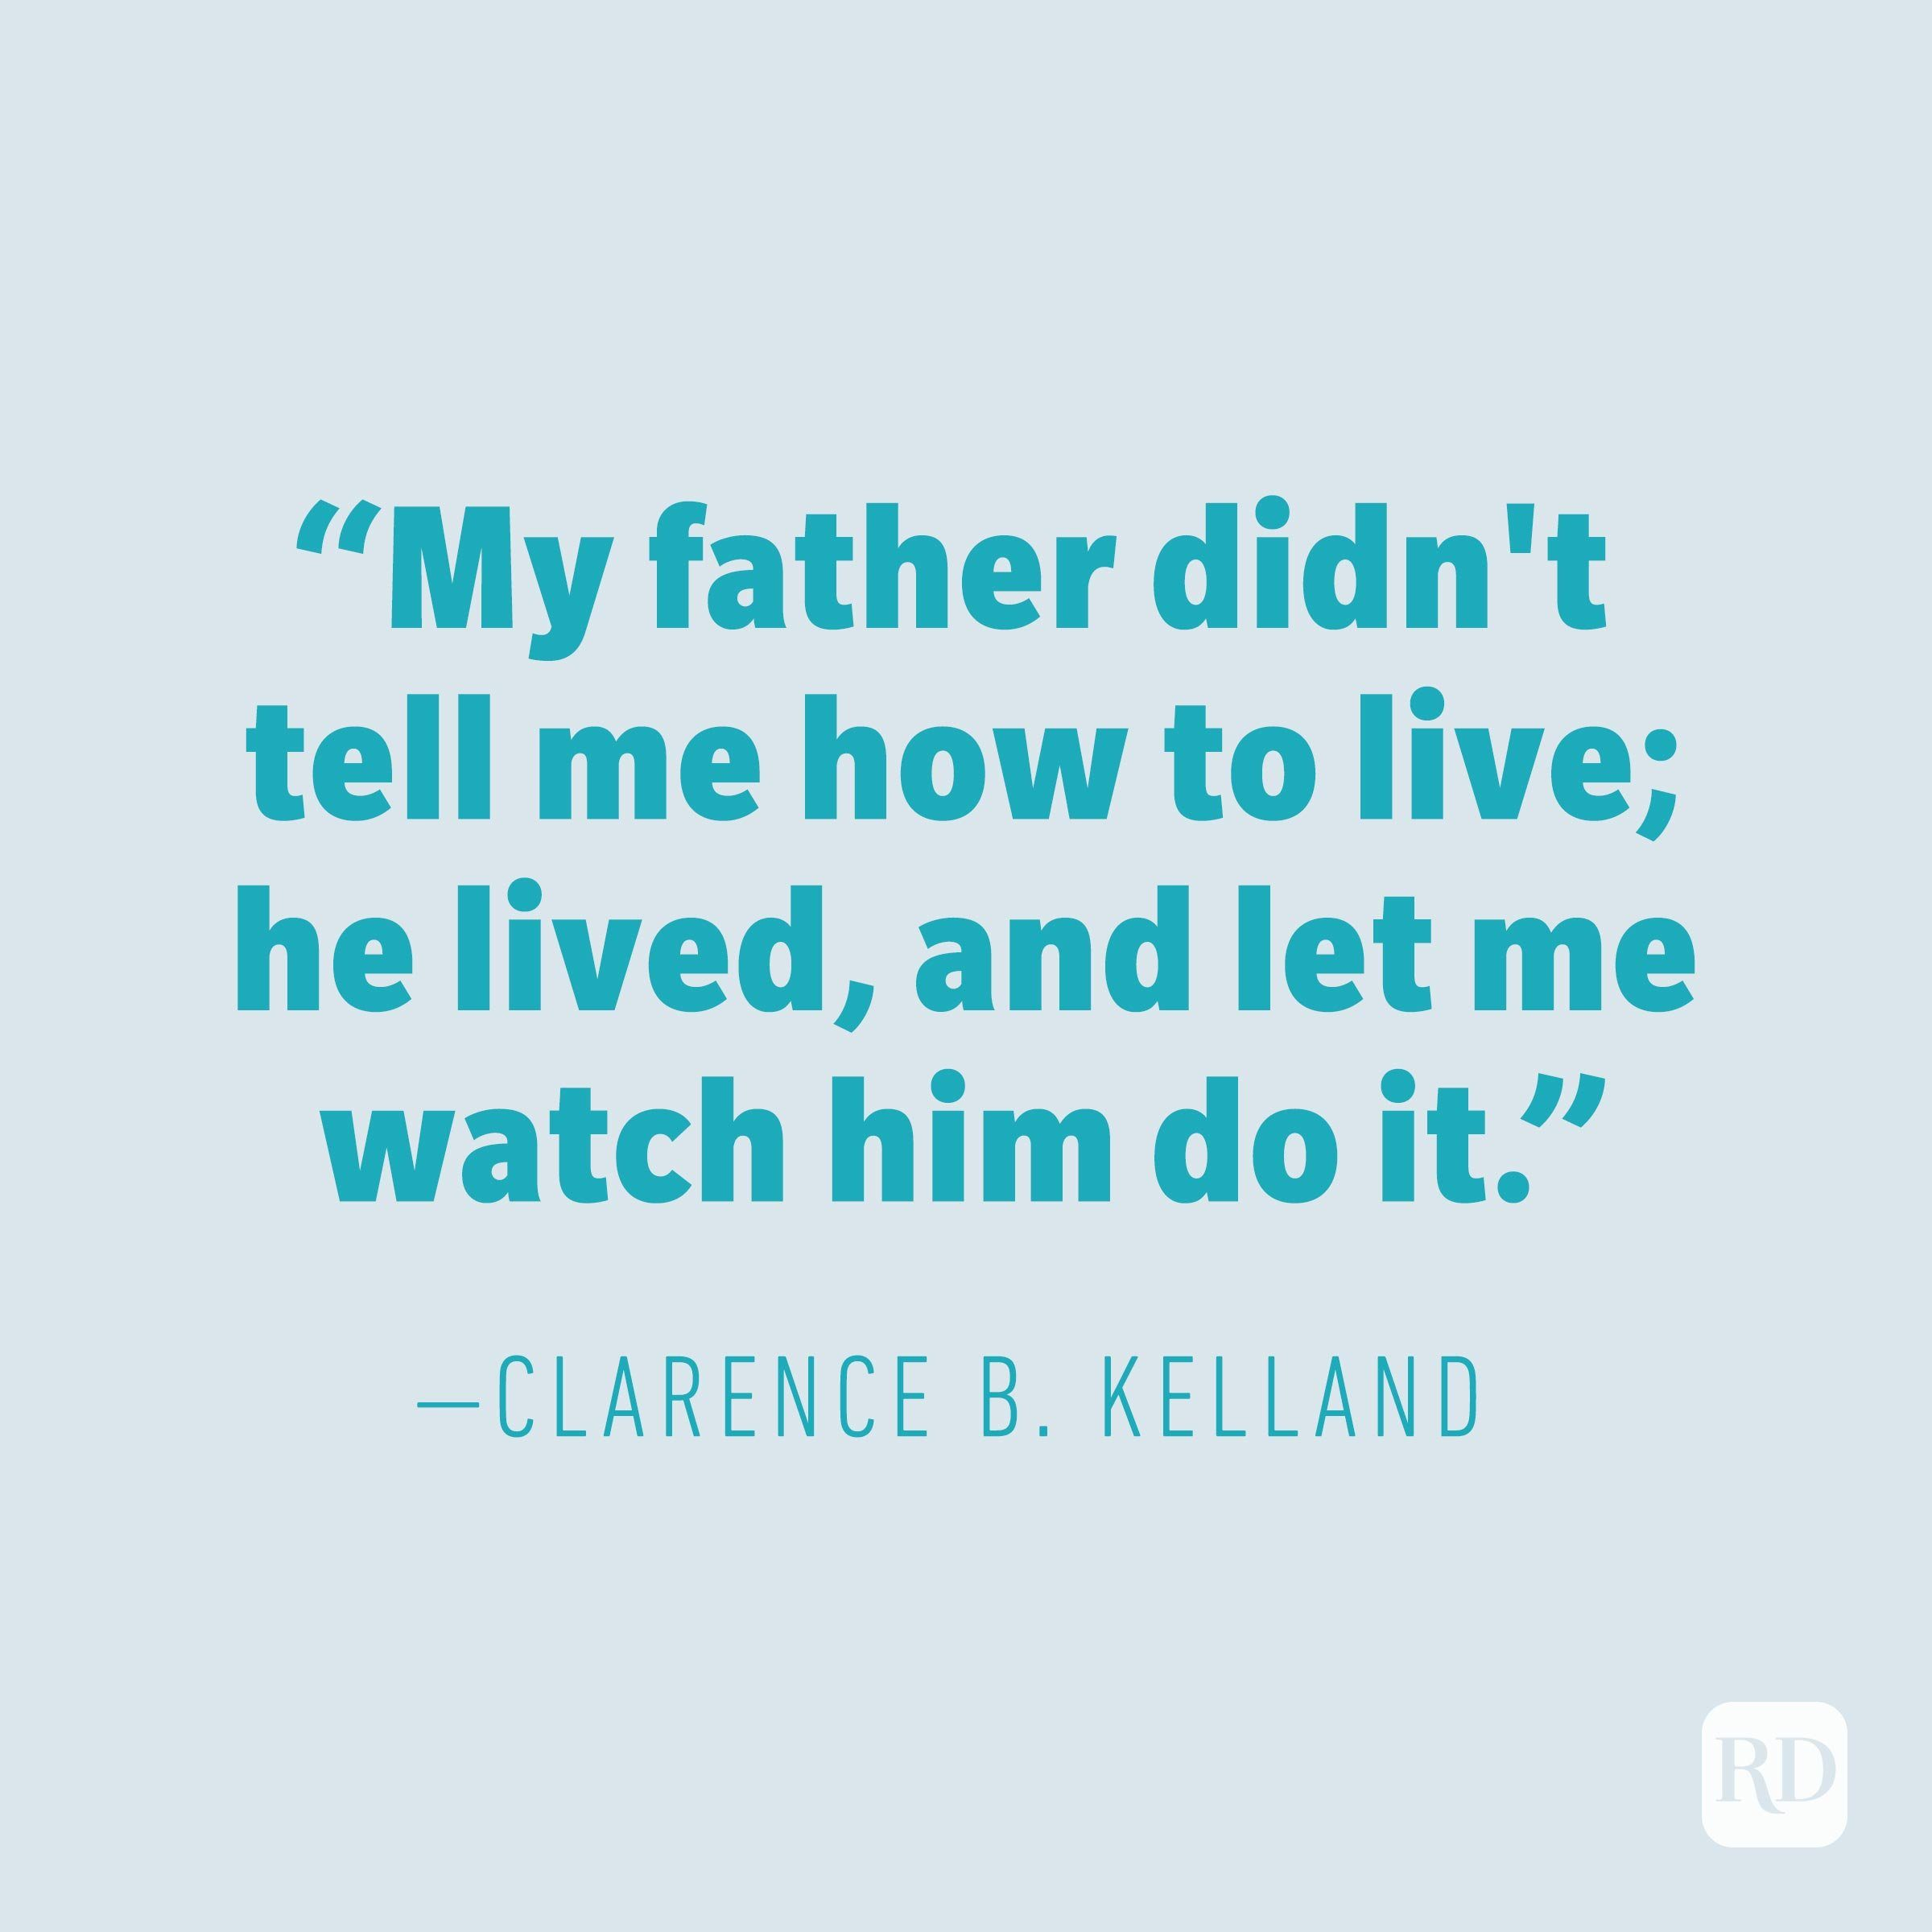 Clarence B. Kelland quote